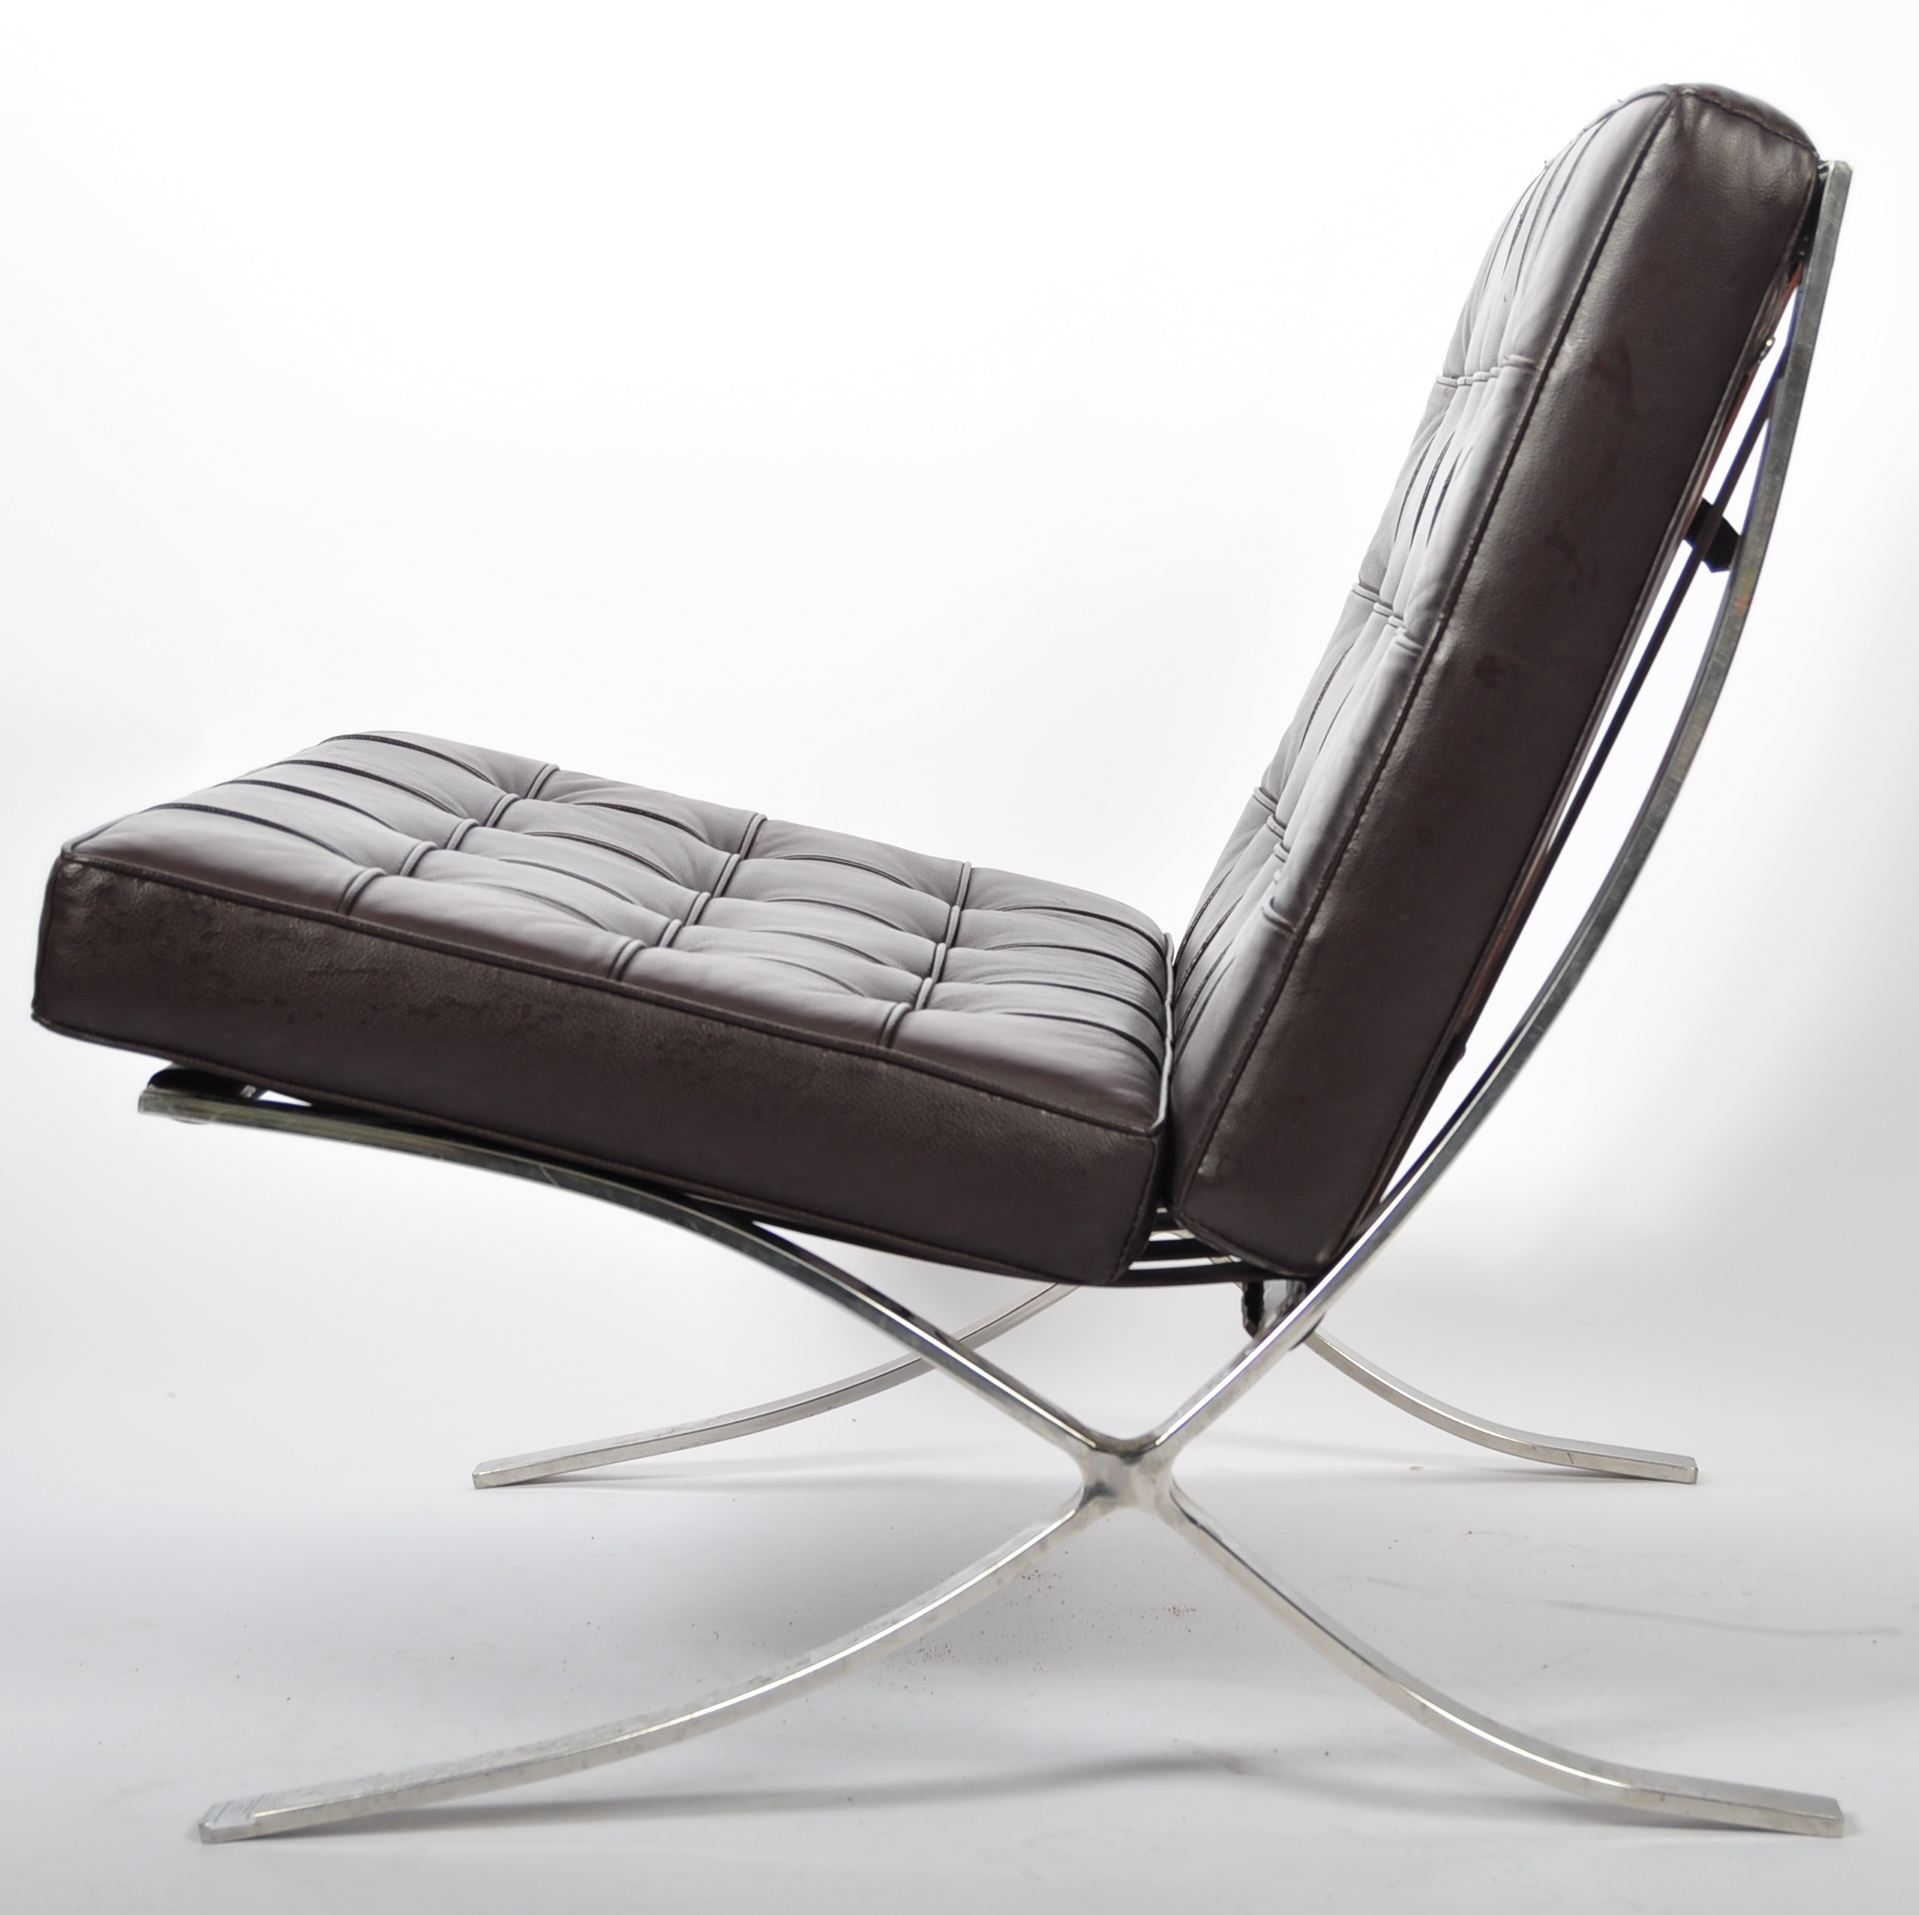 CHROME X-FRAME BARCELONA CHAIR IN BROWN LEATHER - Image 5 of 6